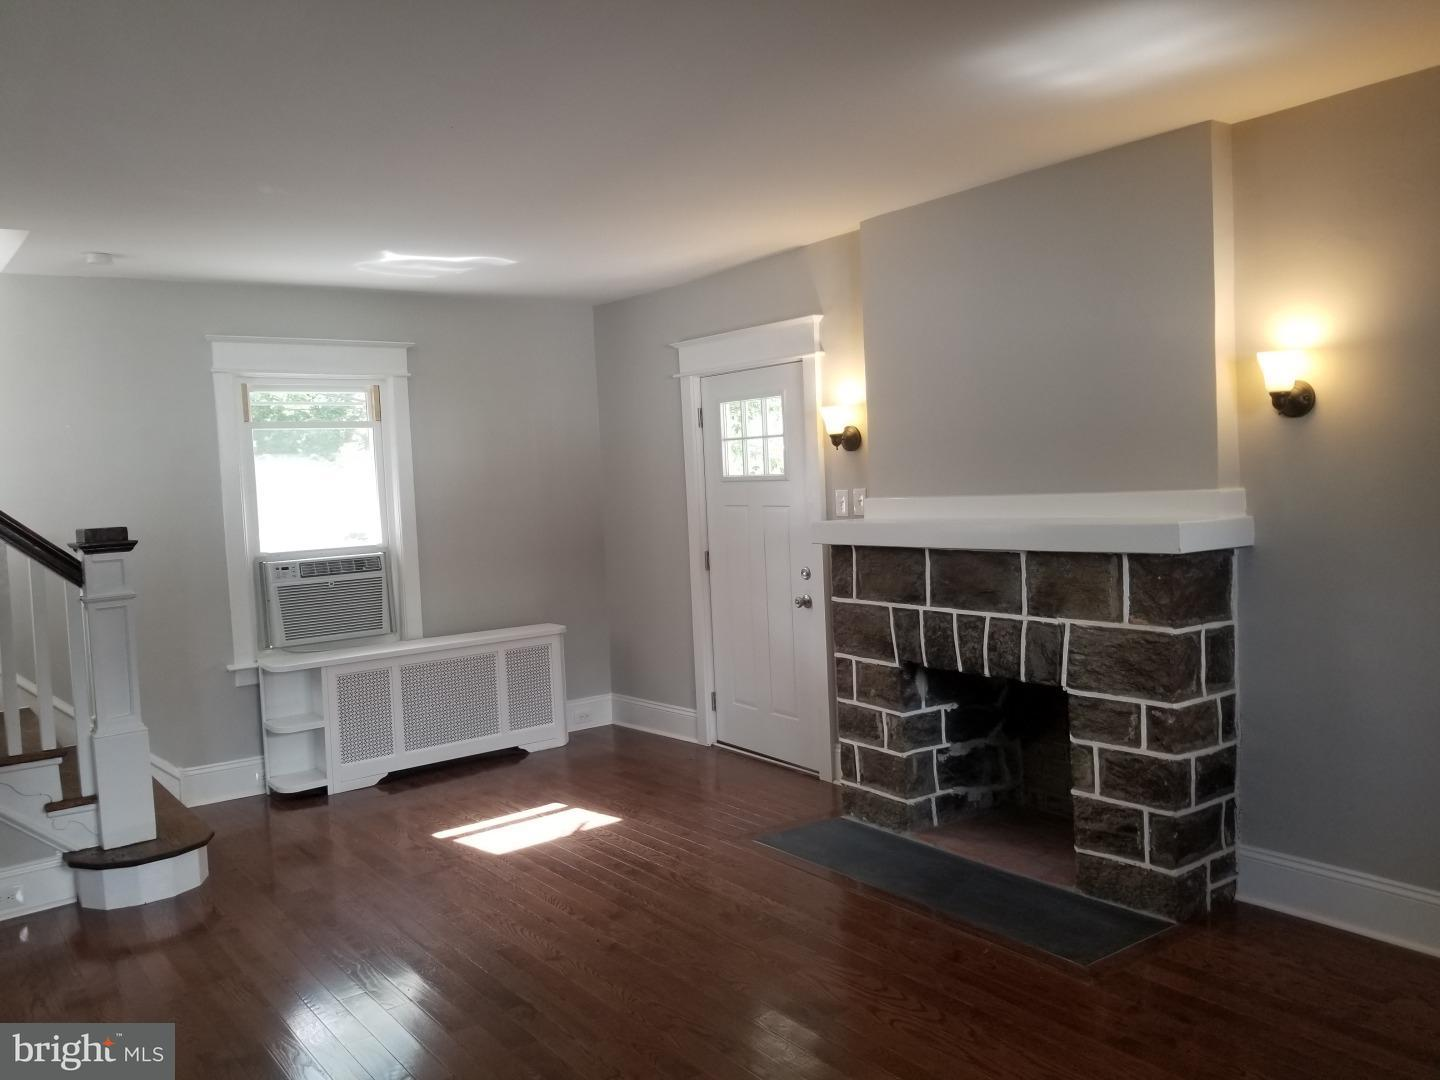 2201 Pennview Road Havertown, PA 19083